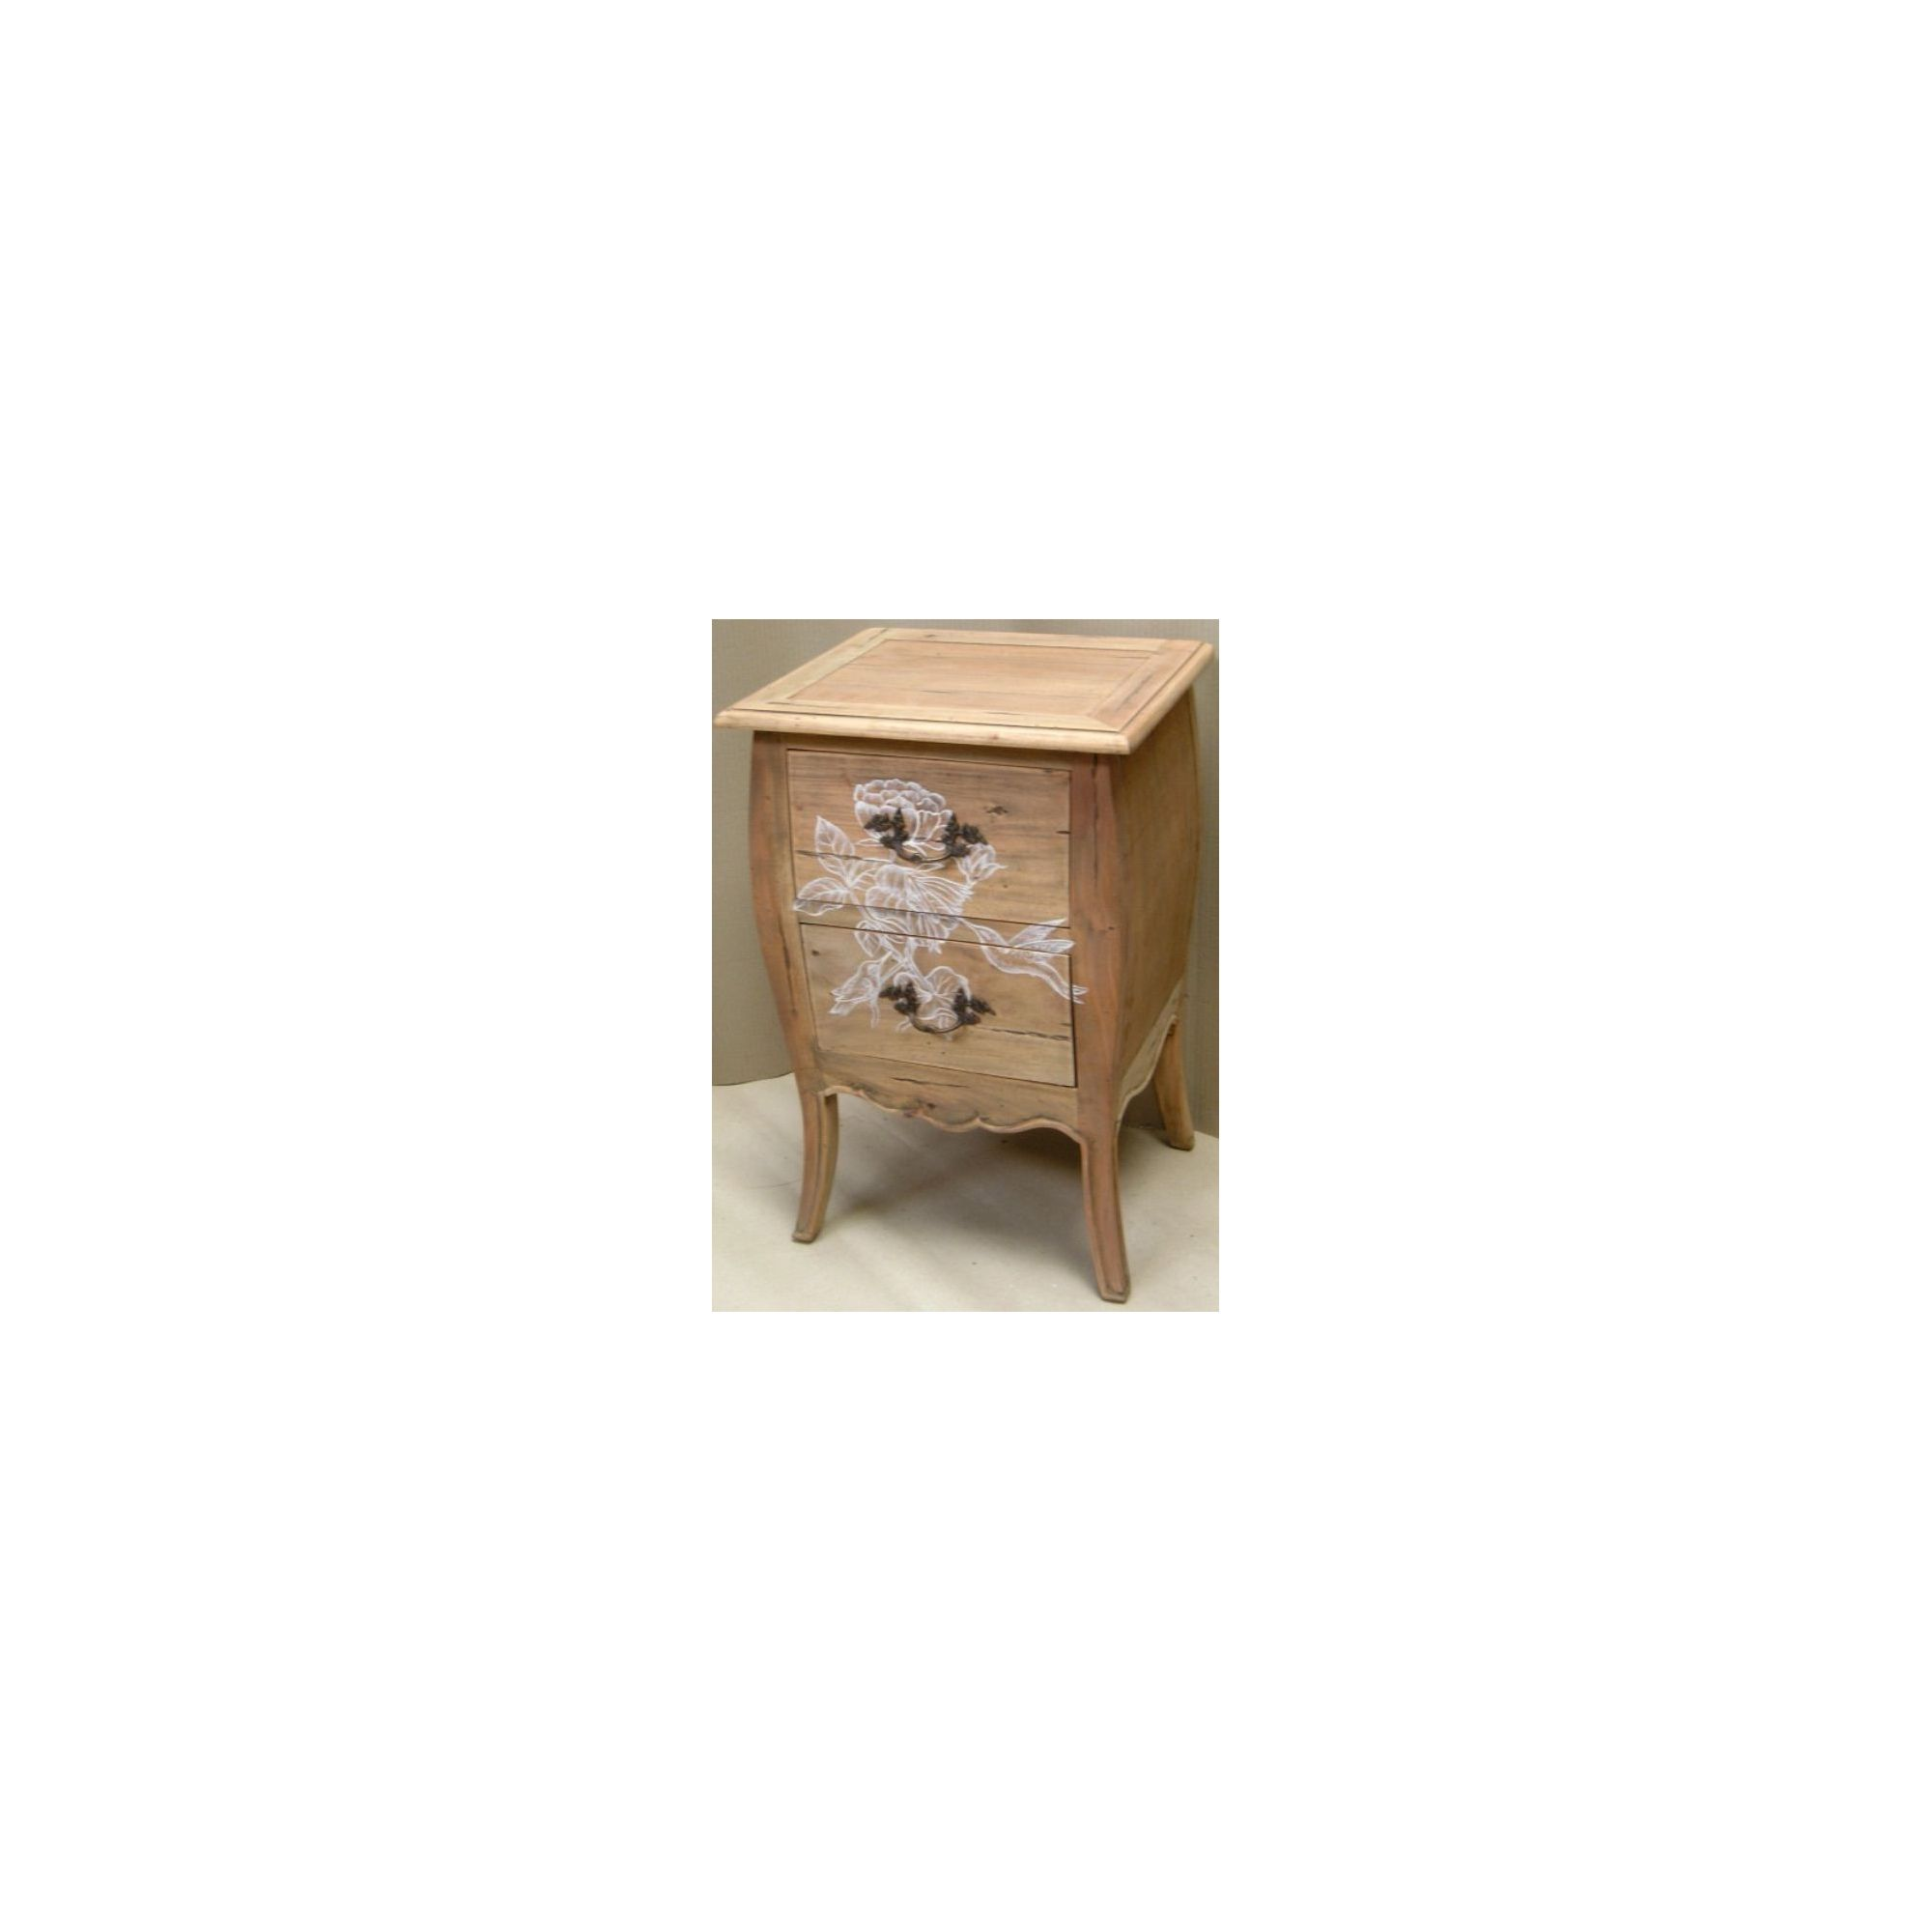 Lock stock and barrel Shell Pavillion Bedside - Humming Bird at Tesco Direct